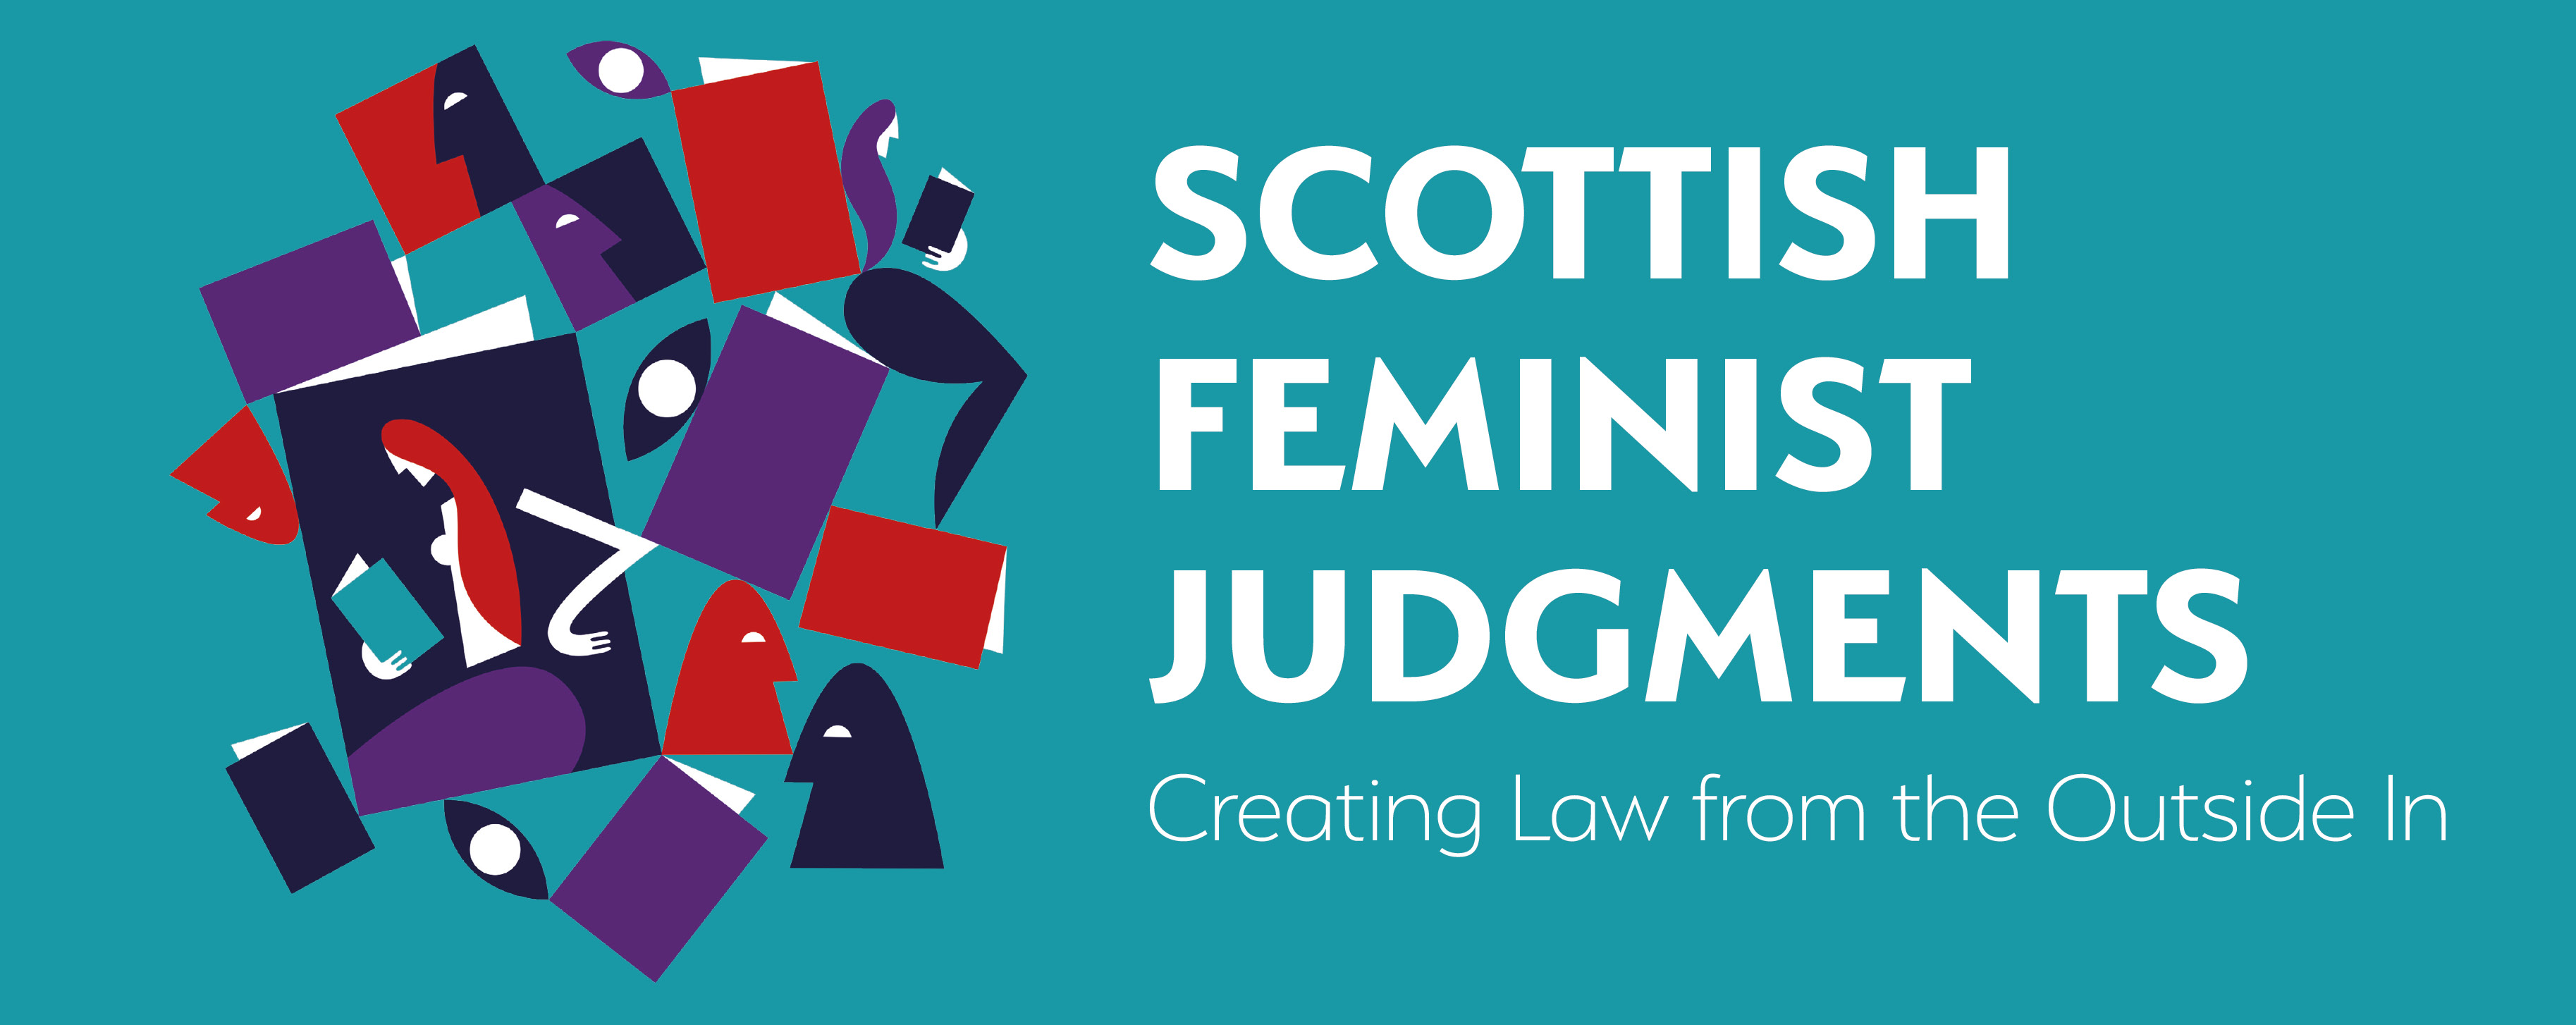 Scottish Feminist Judgments Project